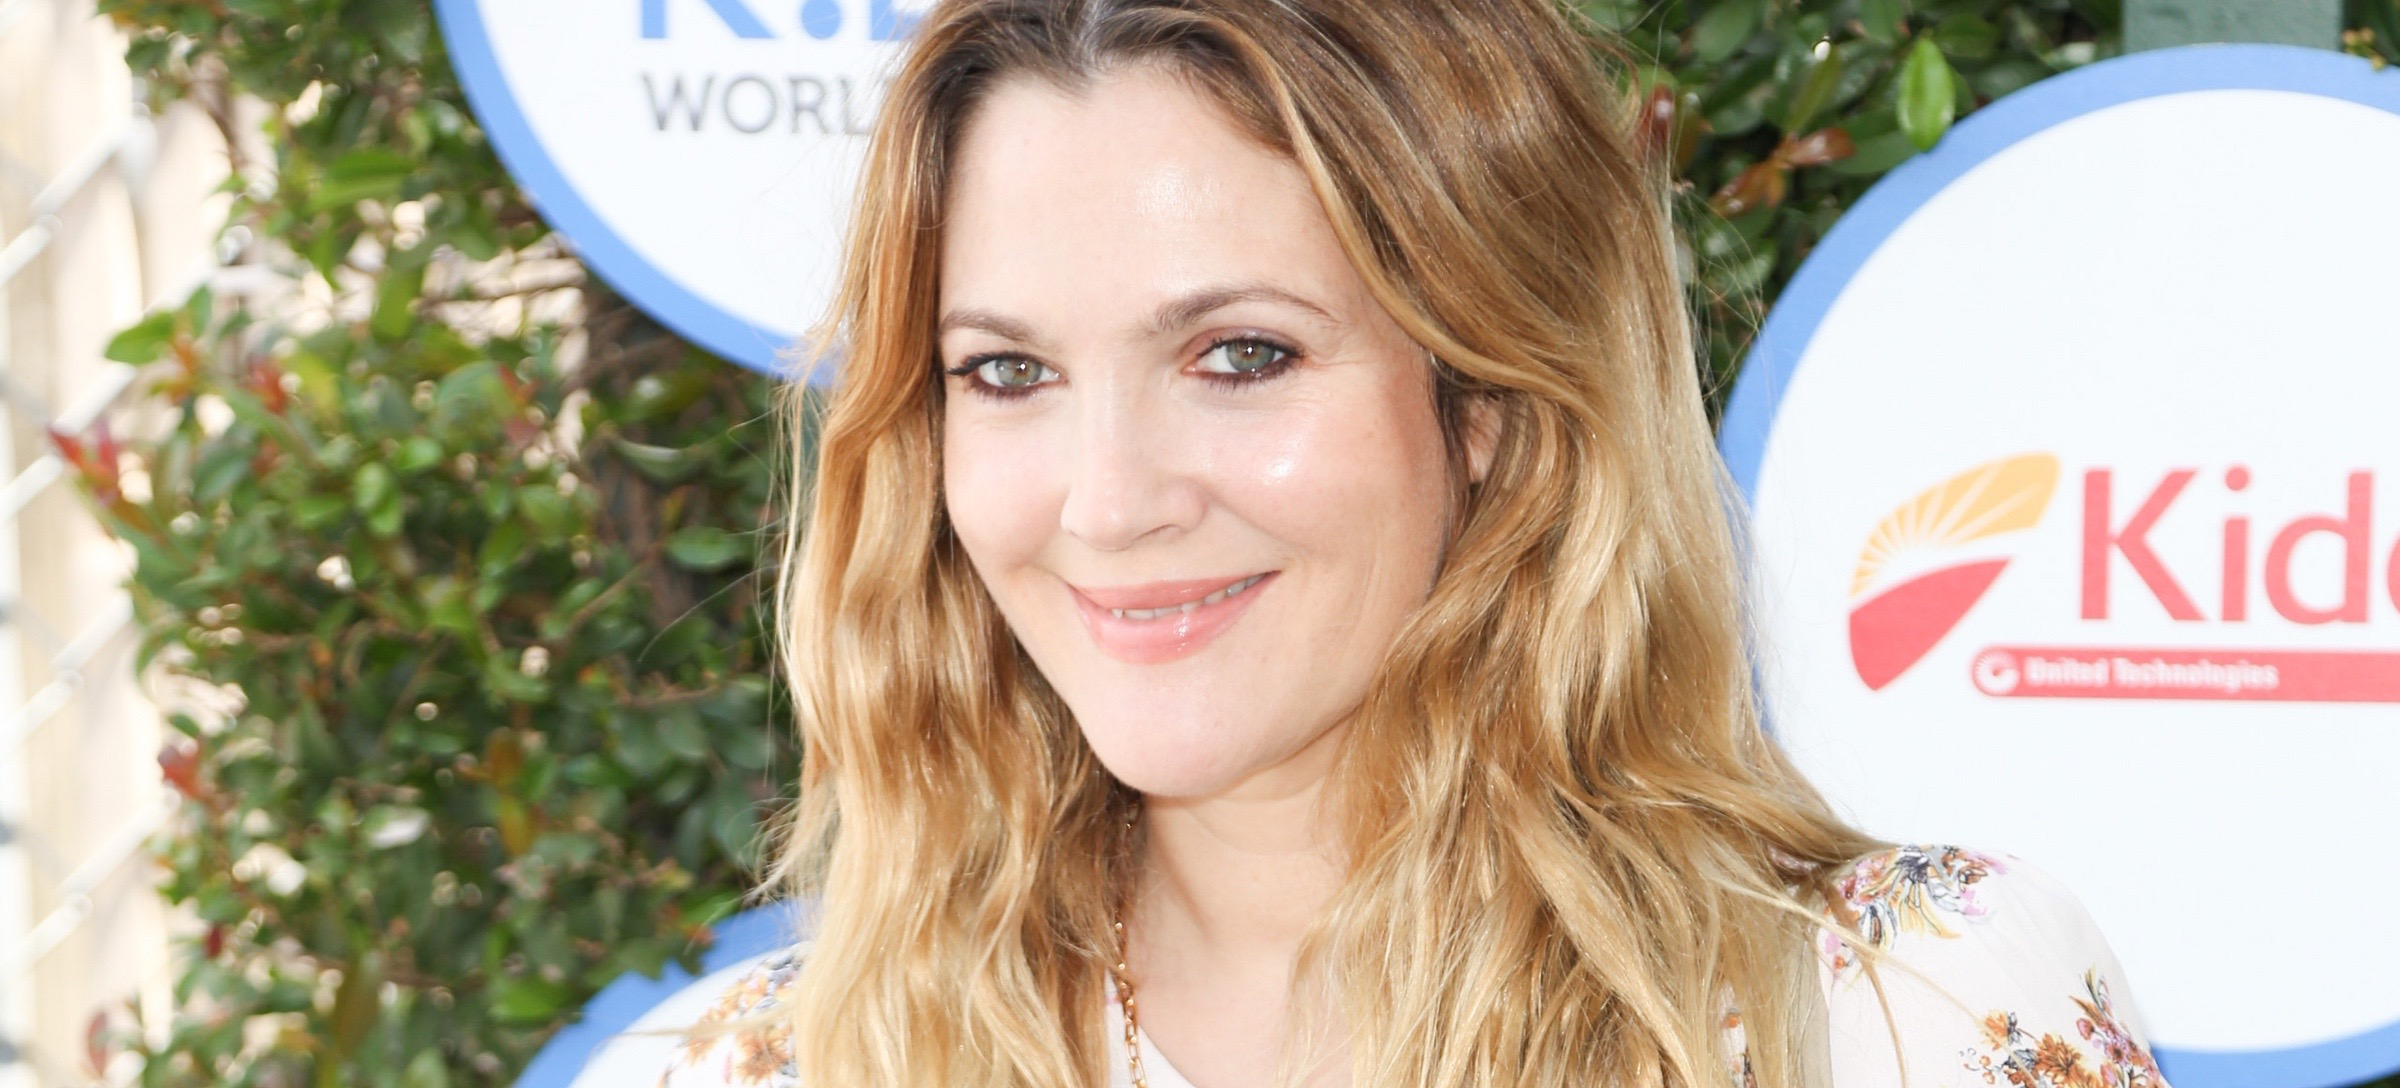 Drew Barrymore On Her Makeup Line, And What She Tells Her Daughters RE: Beauty